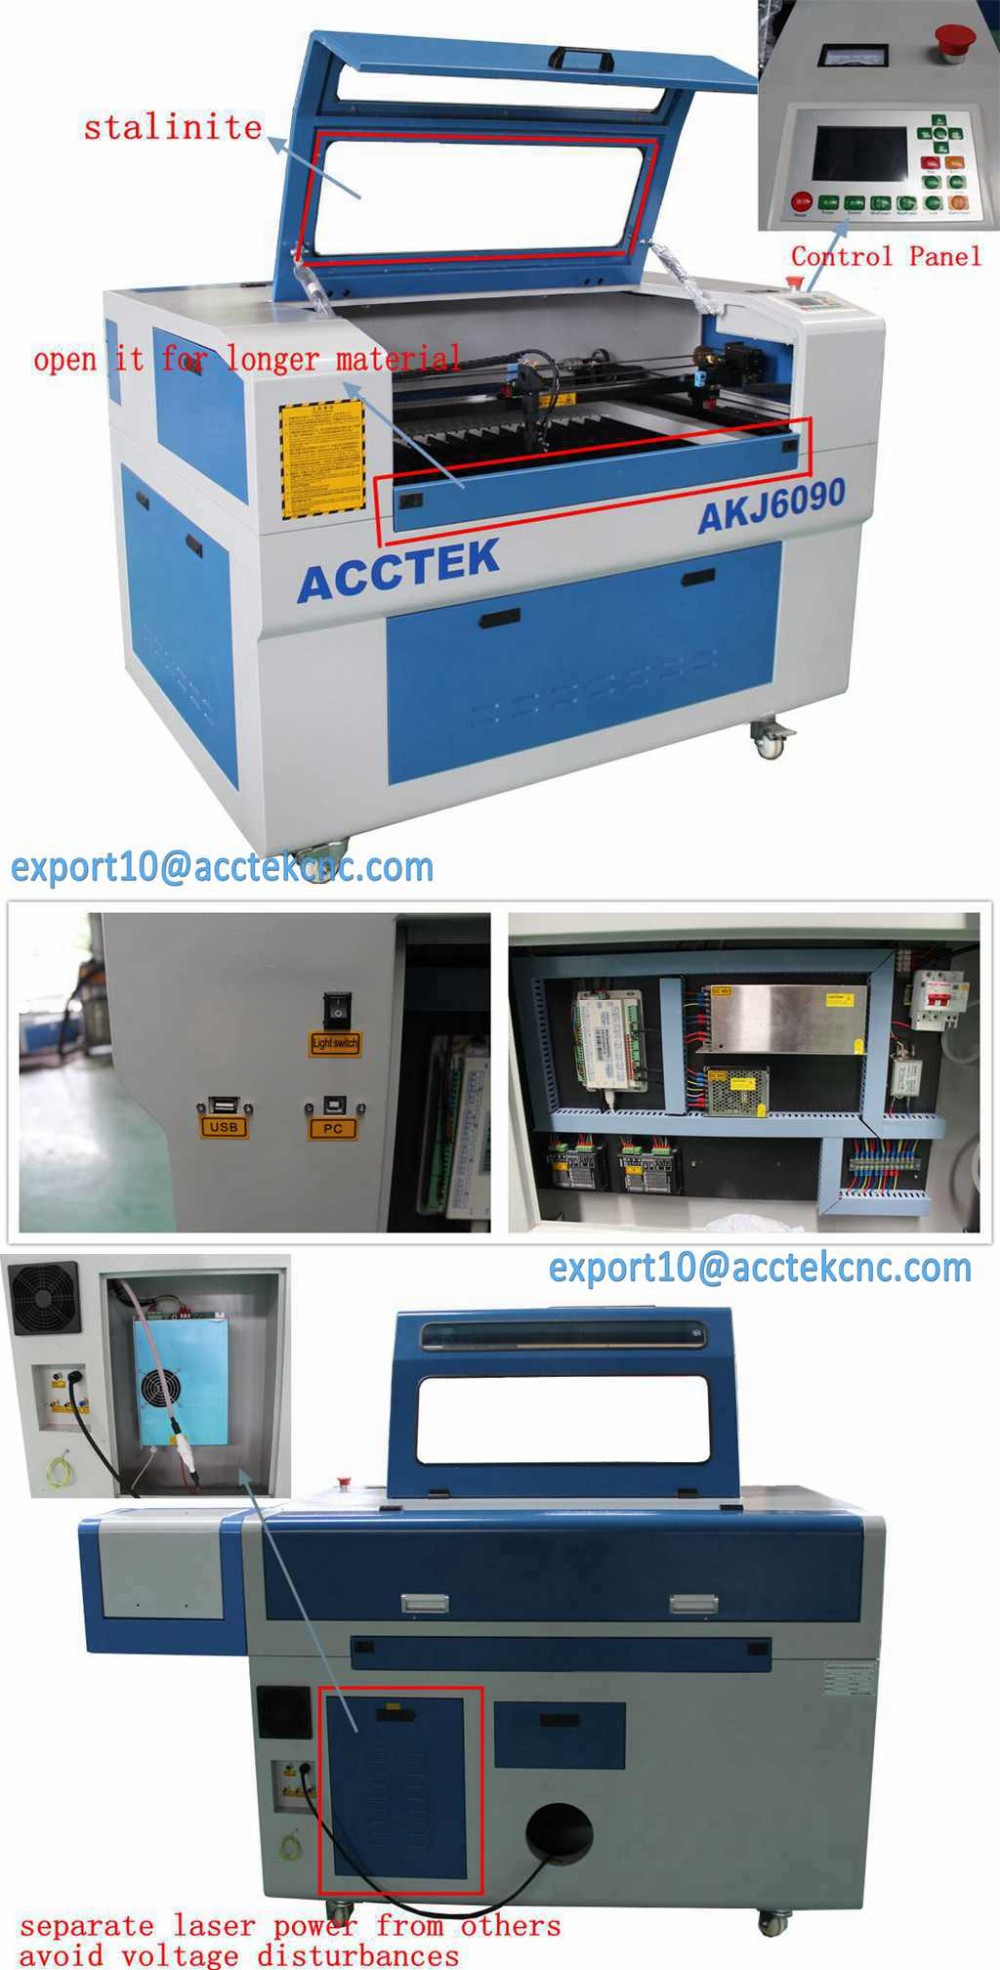 3.Acctek AKJ6090 2016 Hot salemini CO2 laser engraving machine factory price machine details.jpg